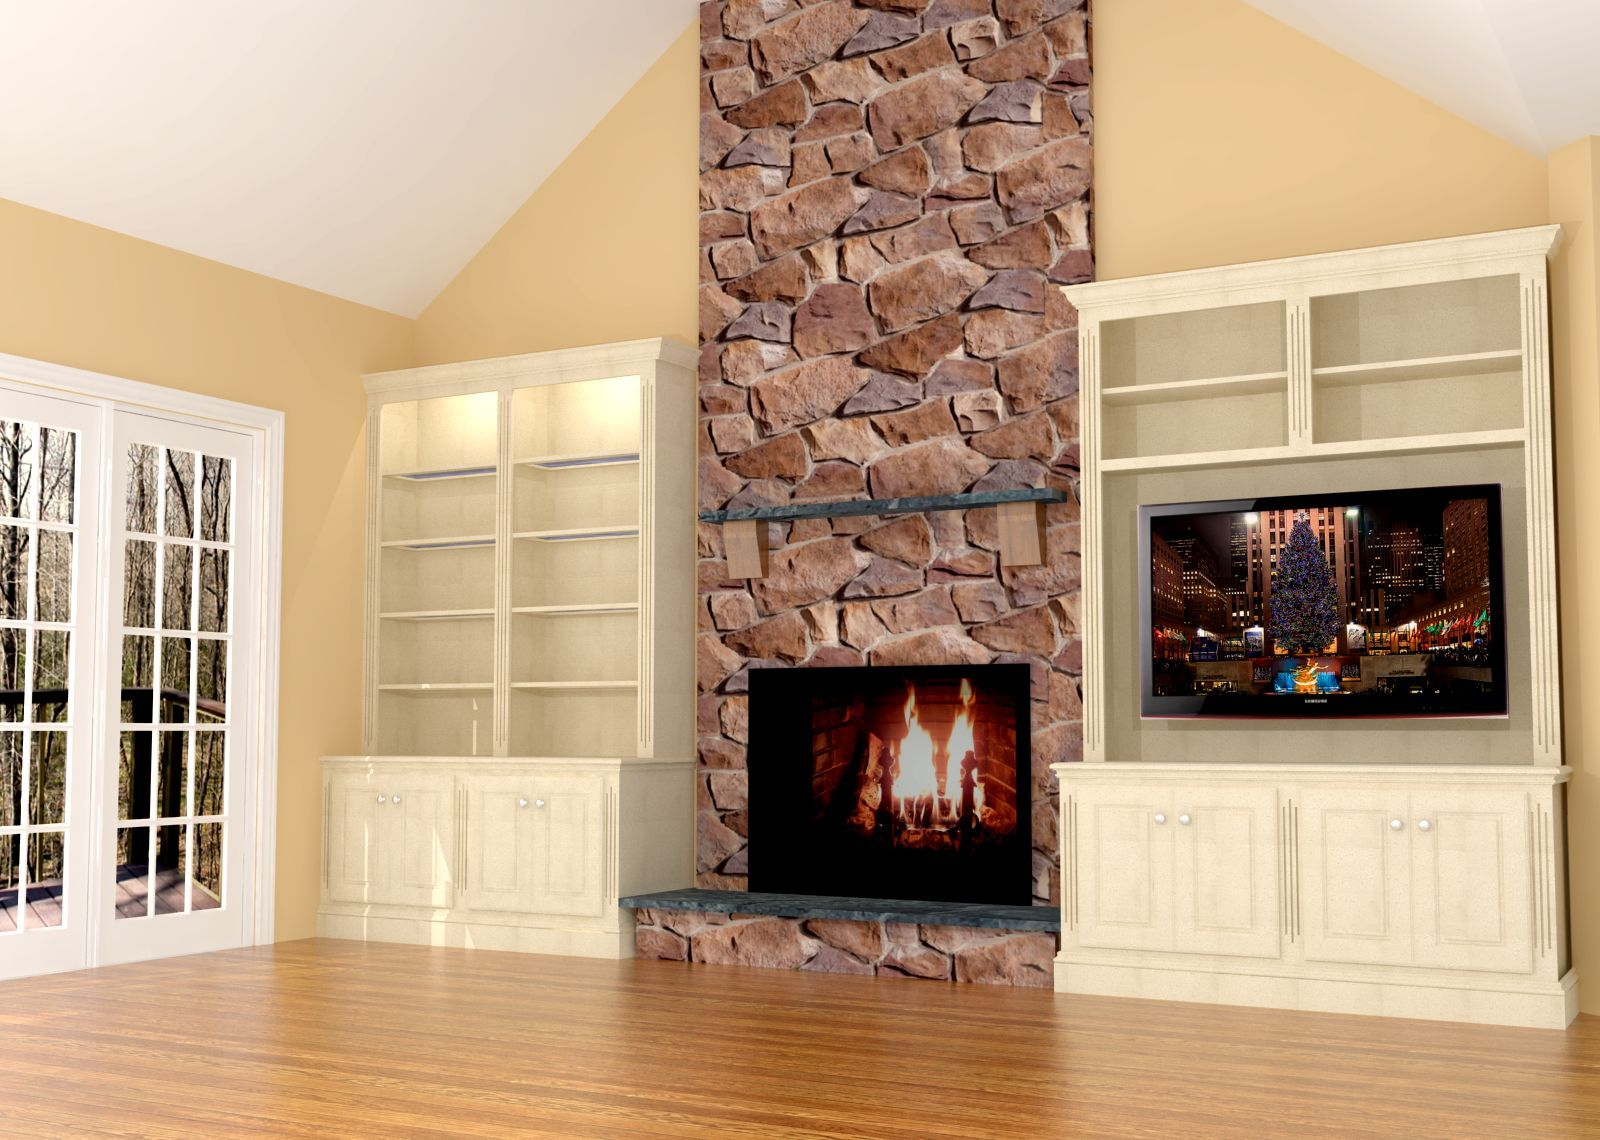 Fireplace Wall Designs simple fireplace design with stone surround 1000 Images About Fireplace Design On Pinterest Tiled Fireplace Tile Fireplace And Modern Fireplaces